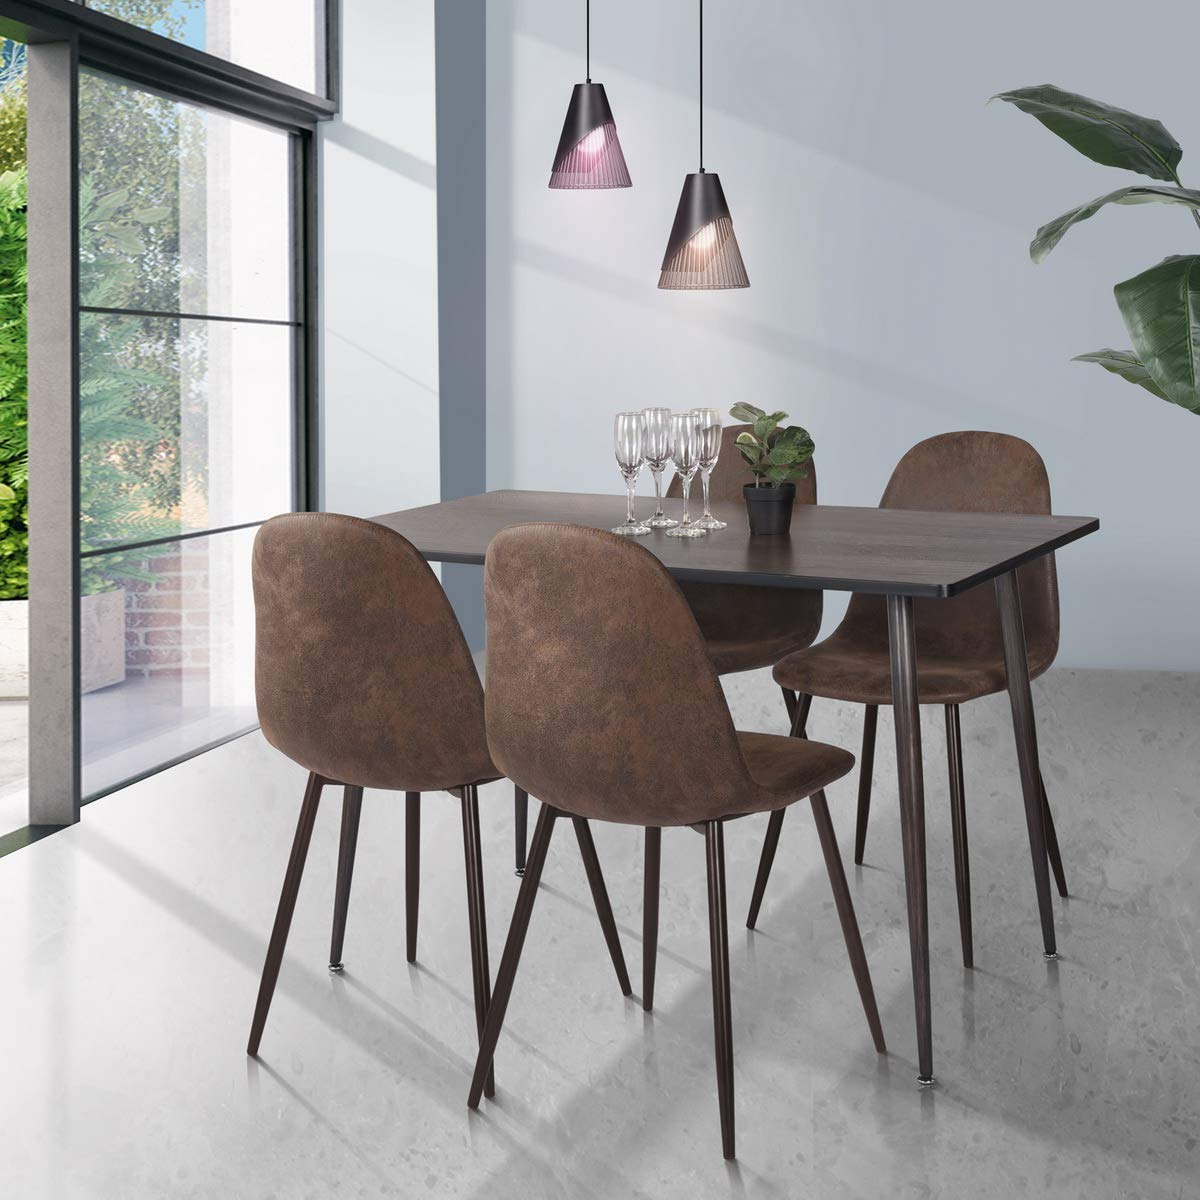 Most Up To Date Wood Top Dining Tables Regarding Homy Casa Farmhouse Rectangle Dining Table, Mid Century Wooden Top Kitchen Dining Table With Metal Tube For Home, Office, Patio(only Table Not Include (Gallery 25 of 30)